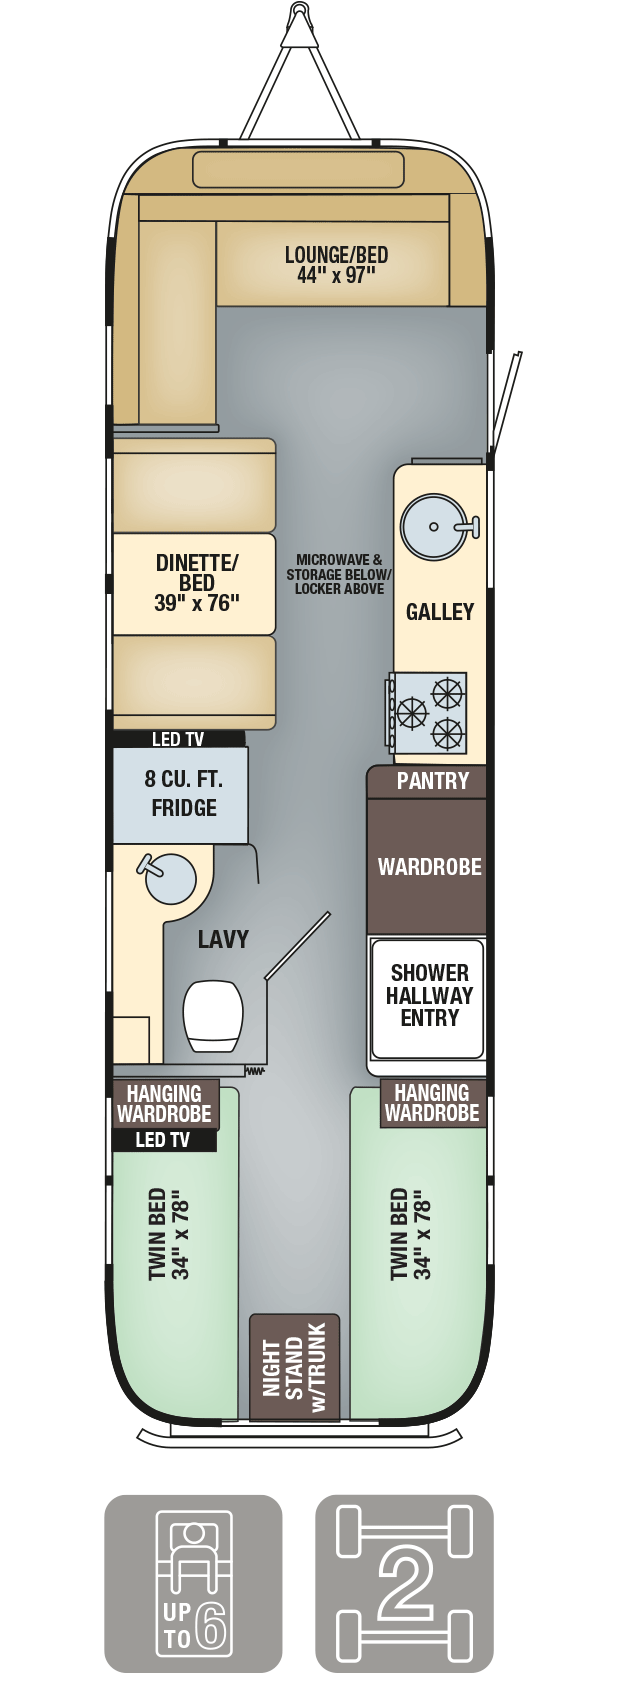 Airstream Interanational Serenity 30 Twin Floor Plan